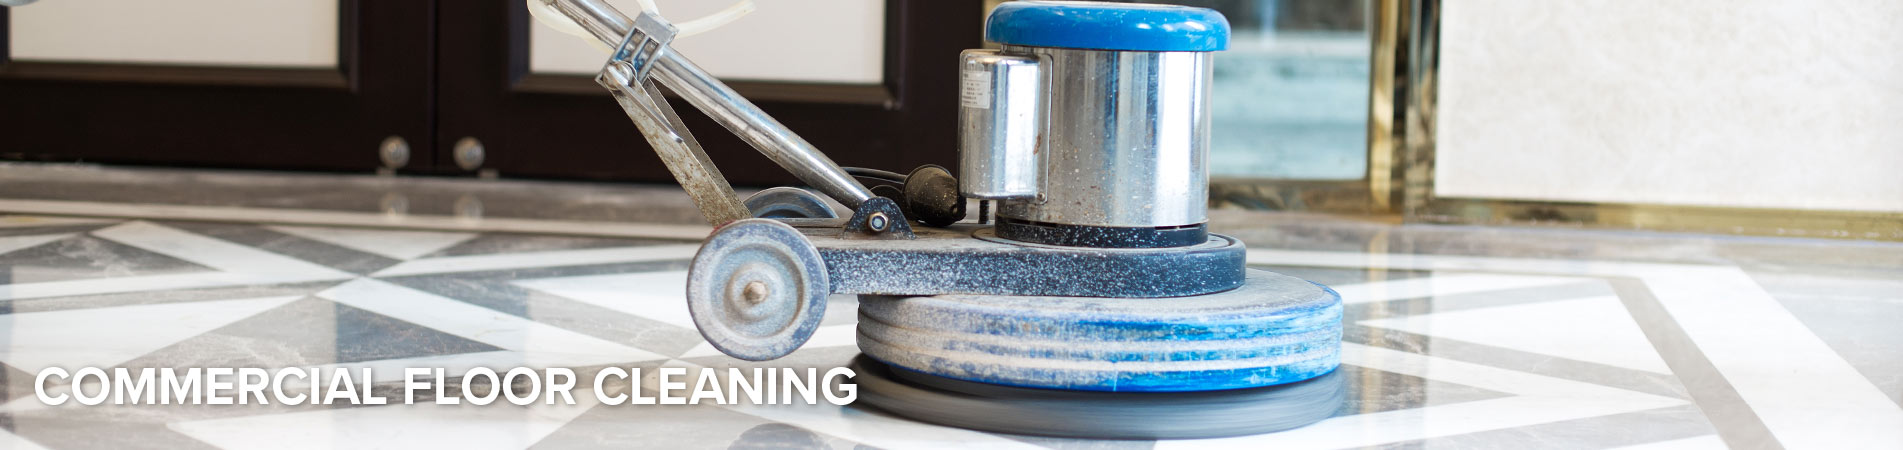 Commercial Floor And Carpet Cleaning Service In Anderson In